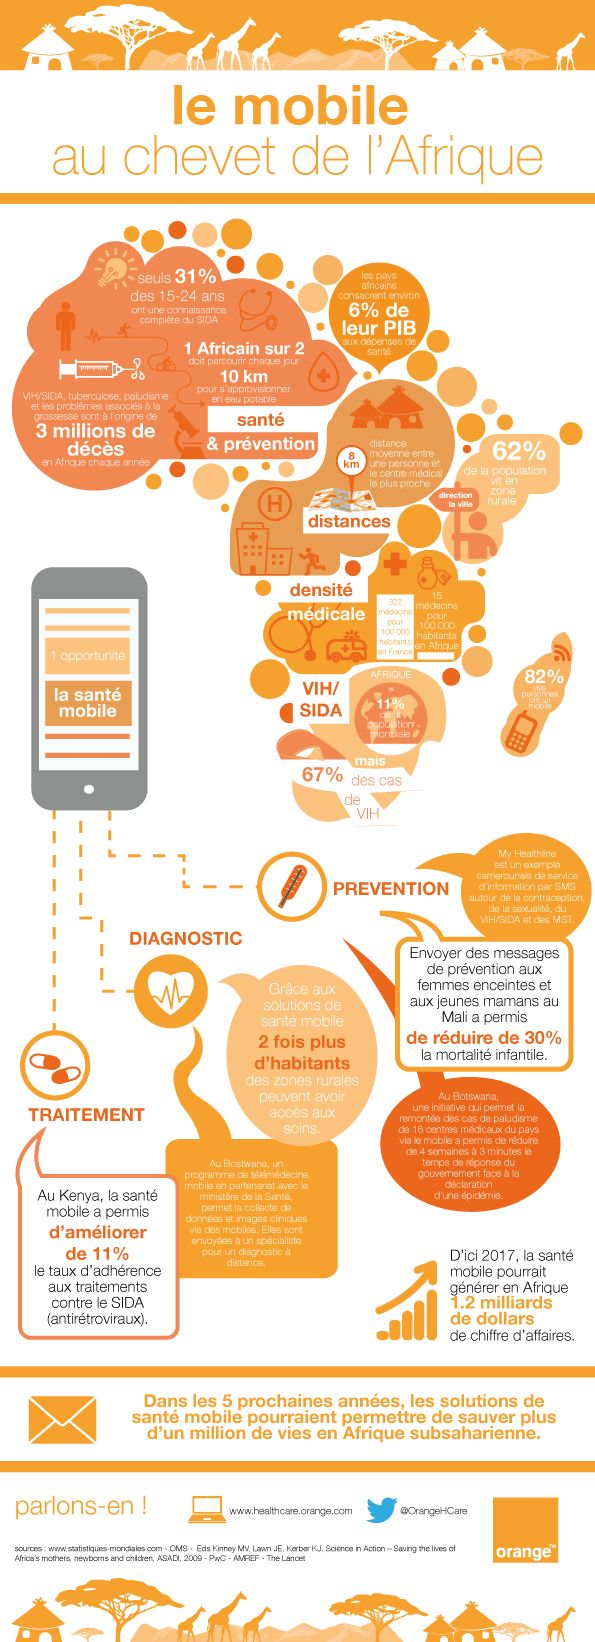 Le mobile au chevet de l'Afrique | Orange Business Services